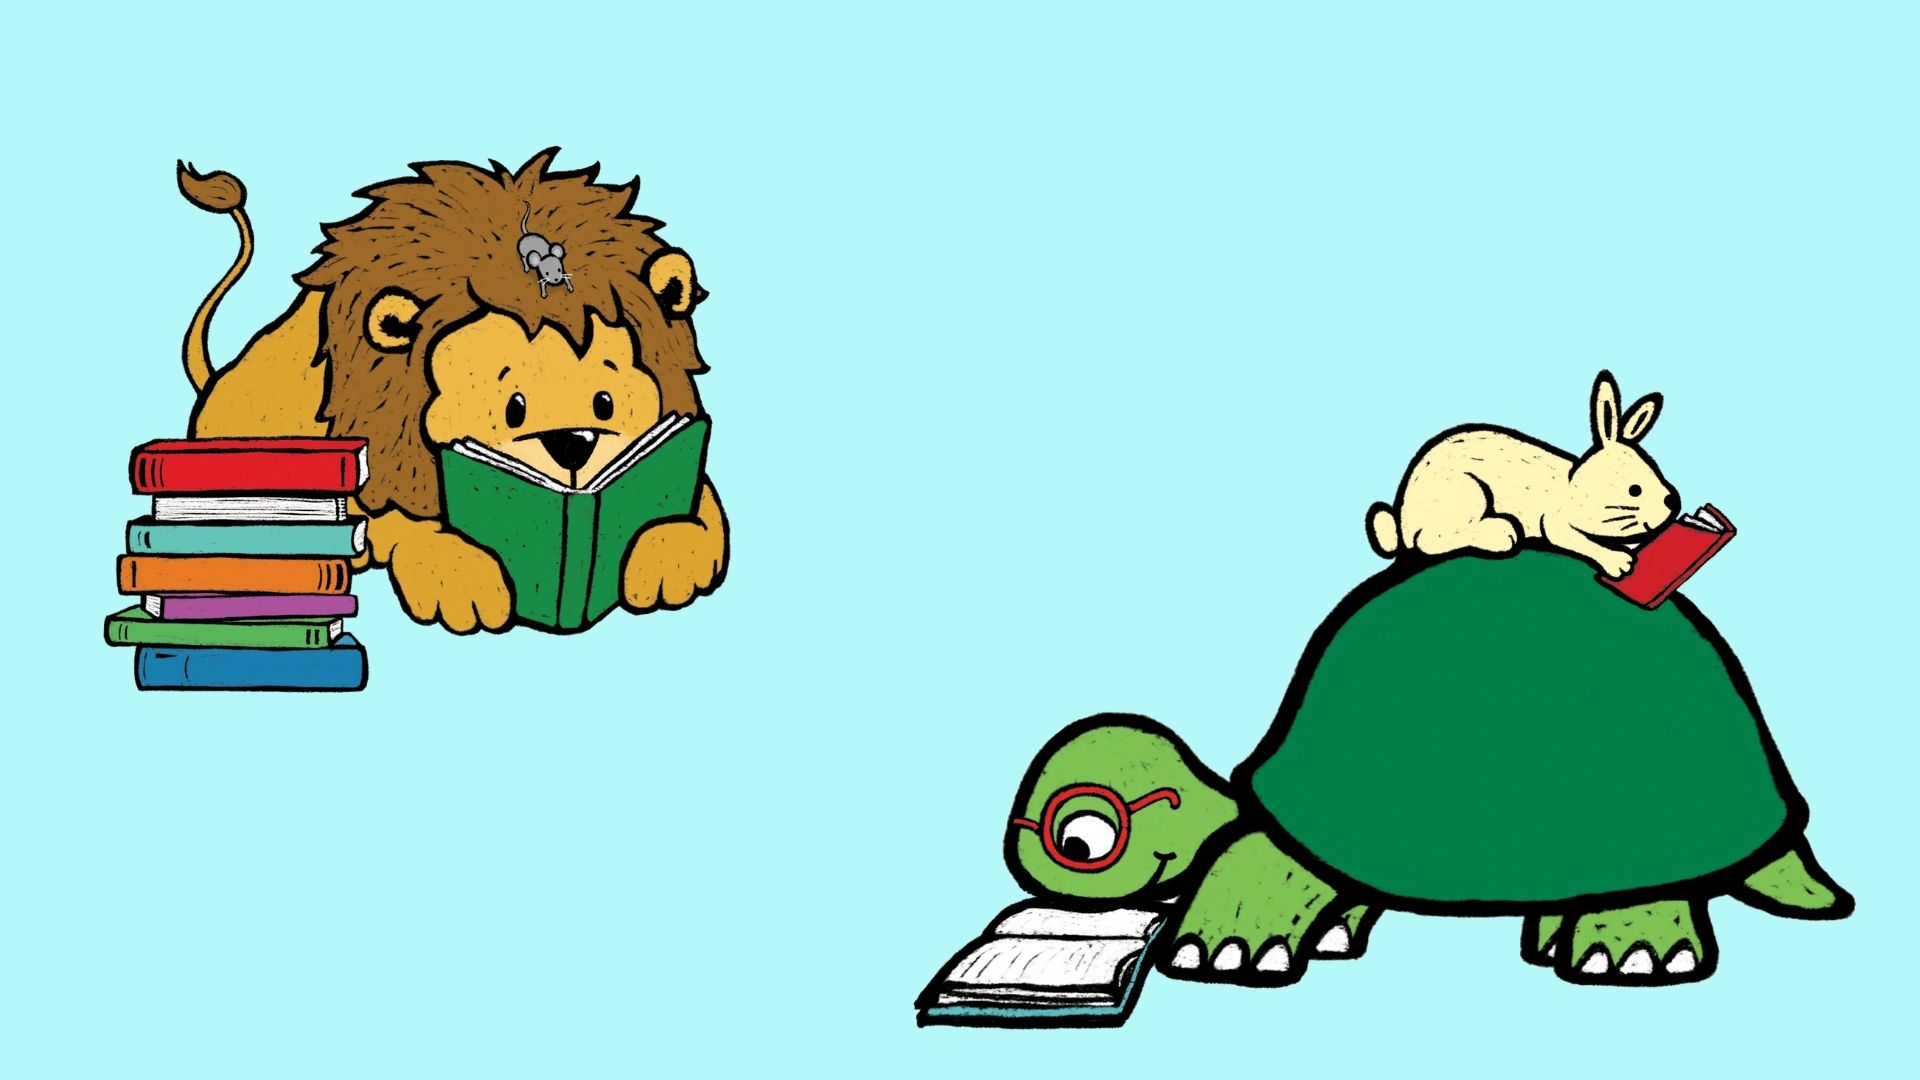 turtle, lion, and rabbit reading